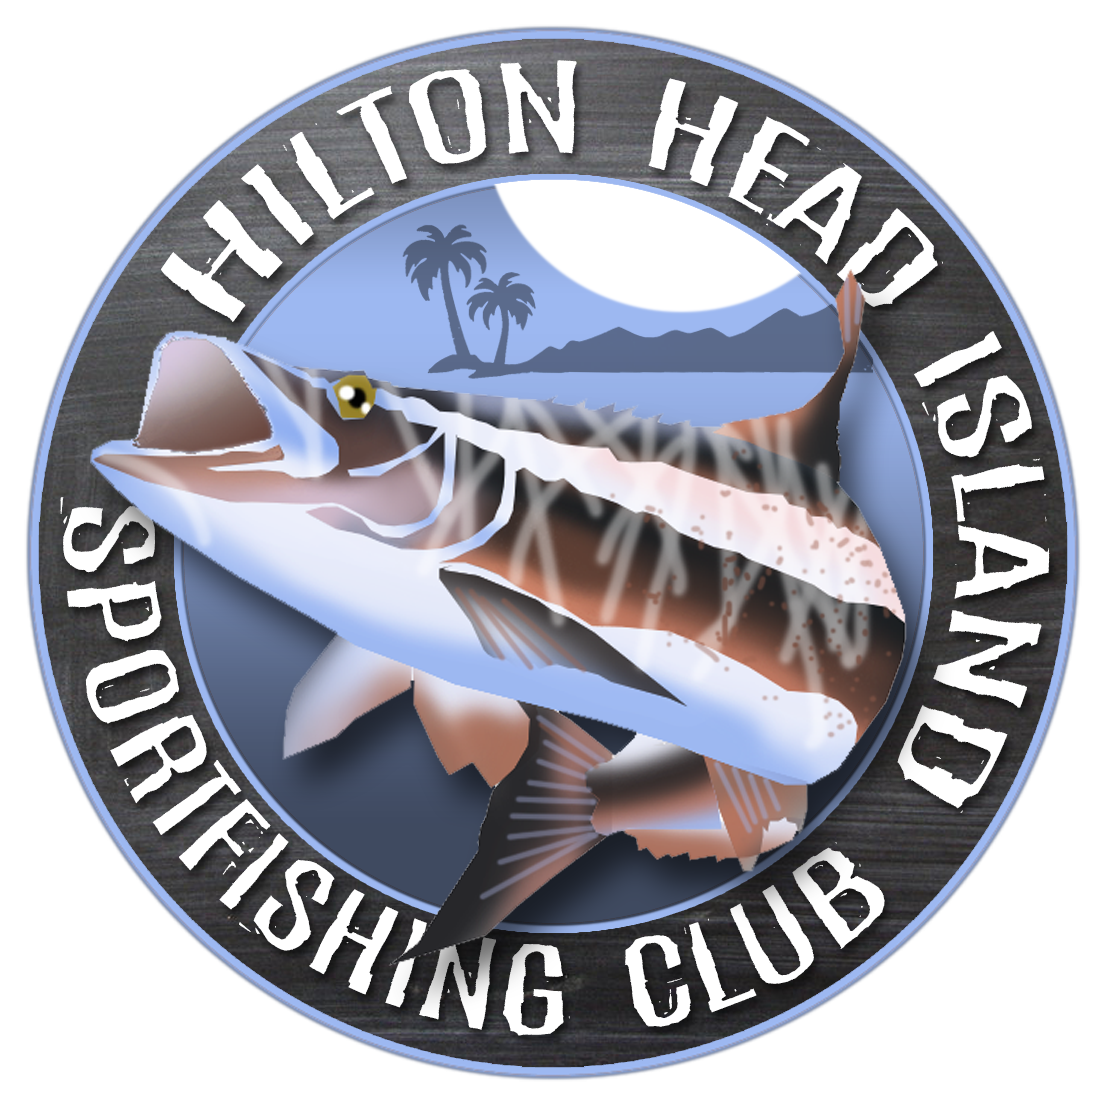 Hilton Head Sportfishing Club